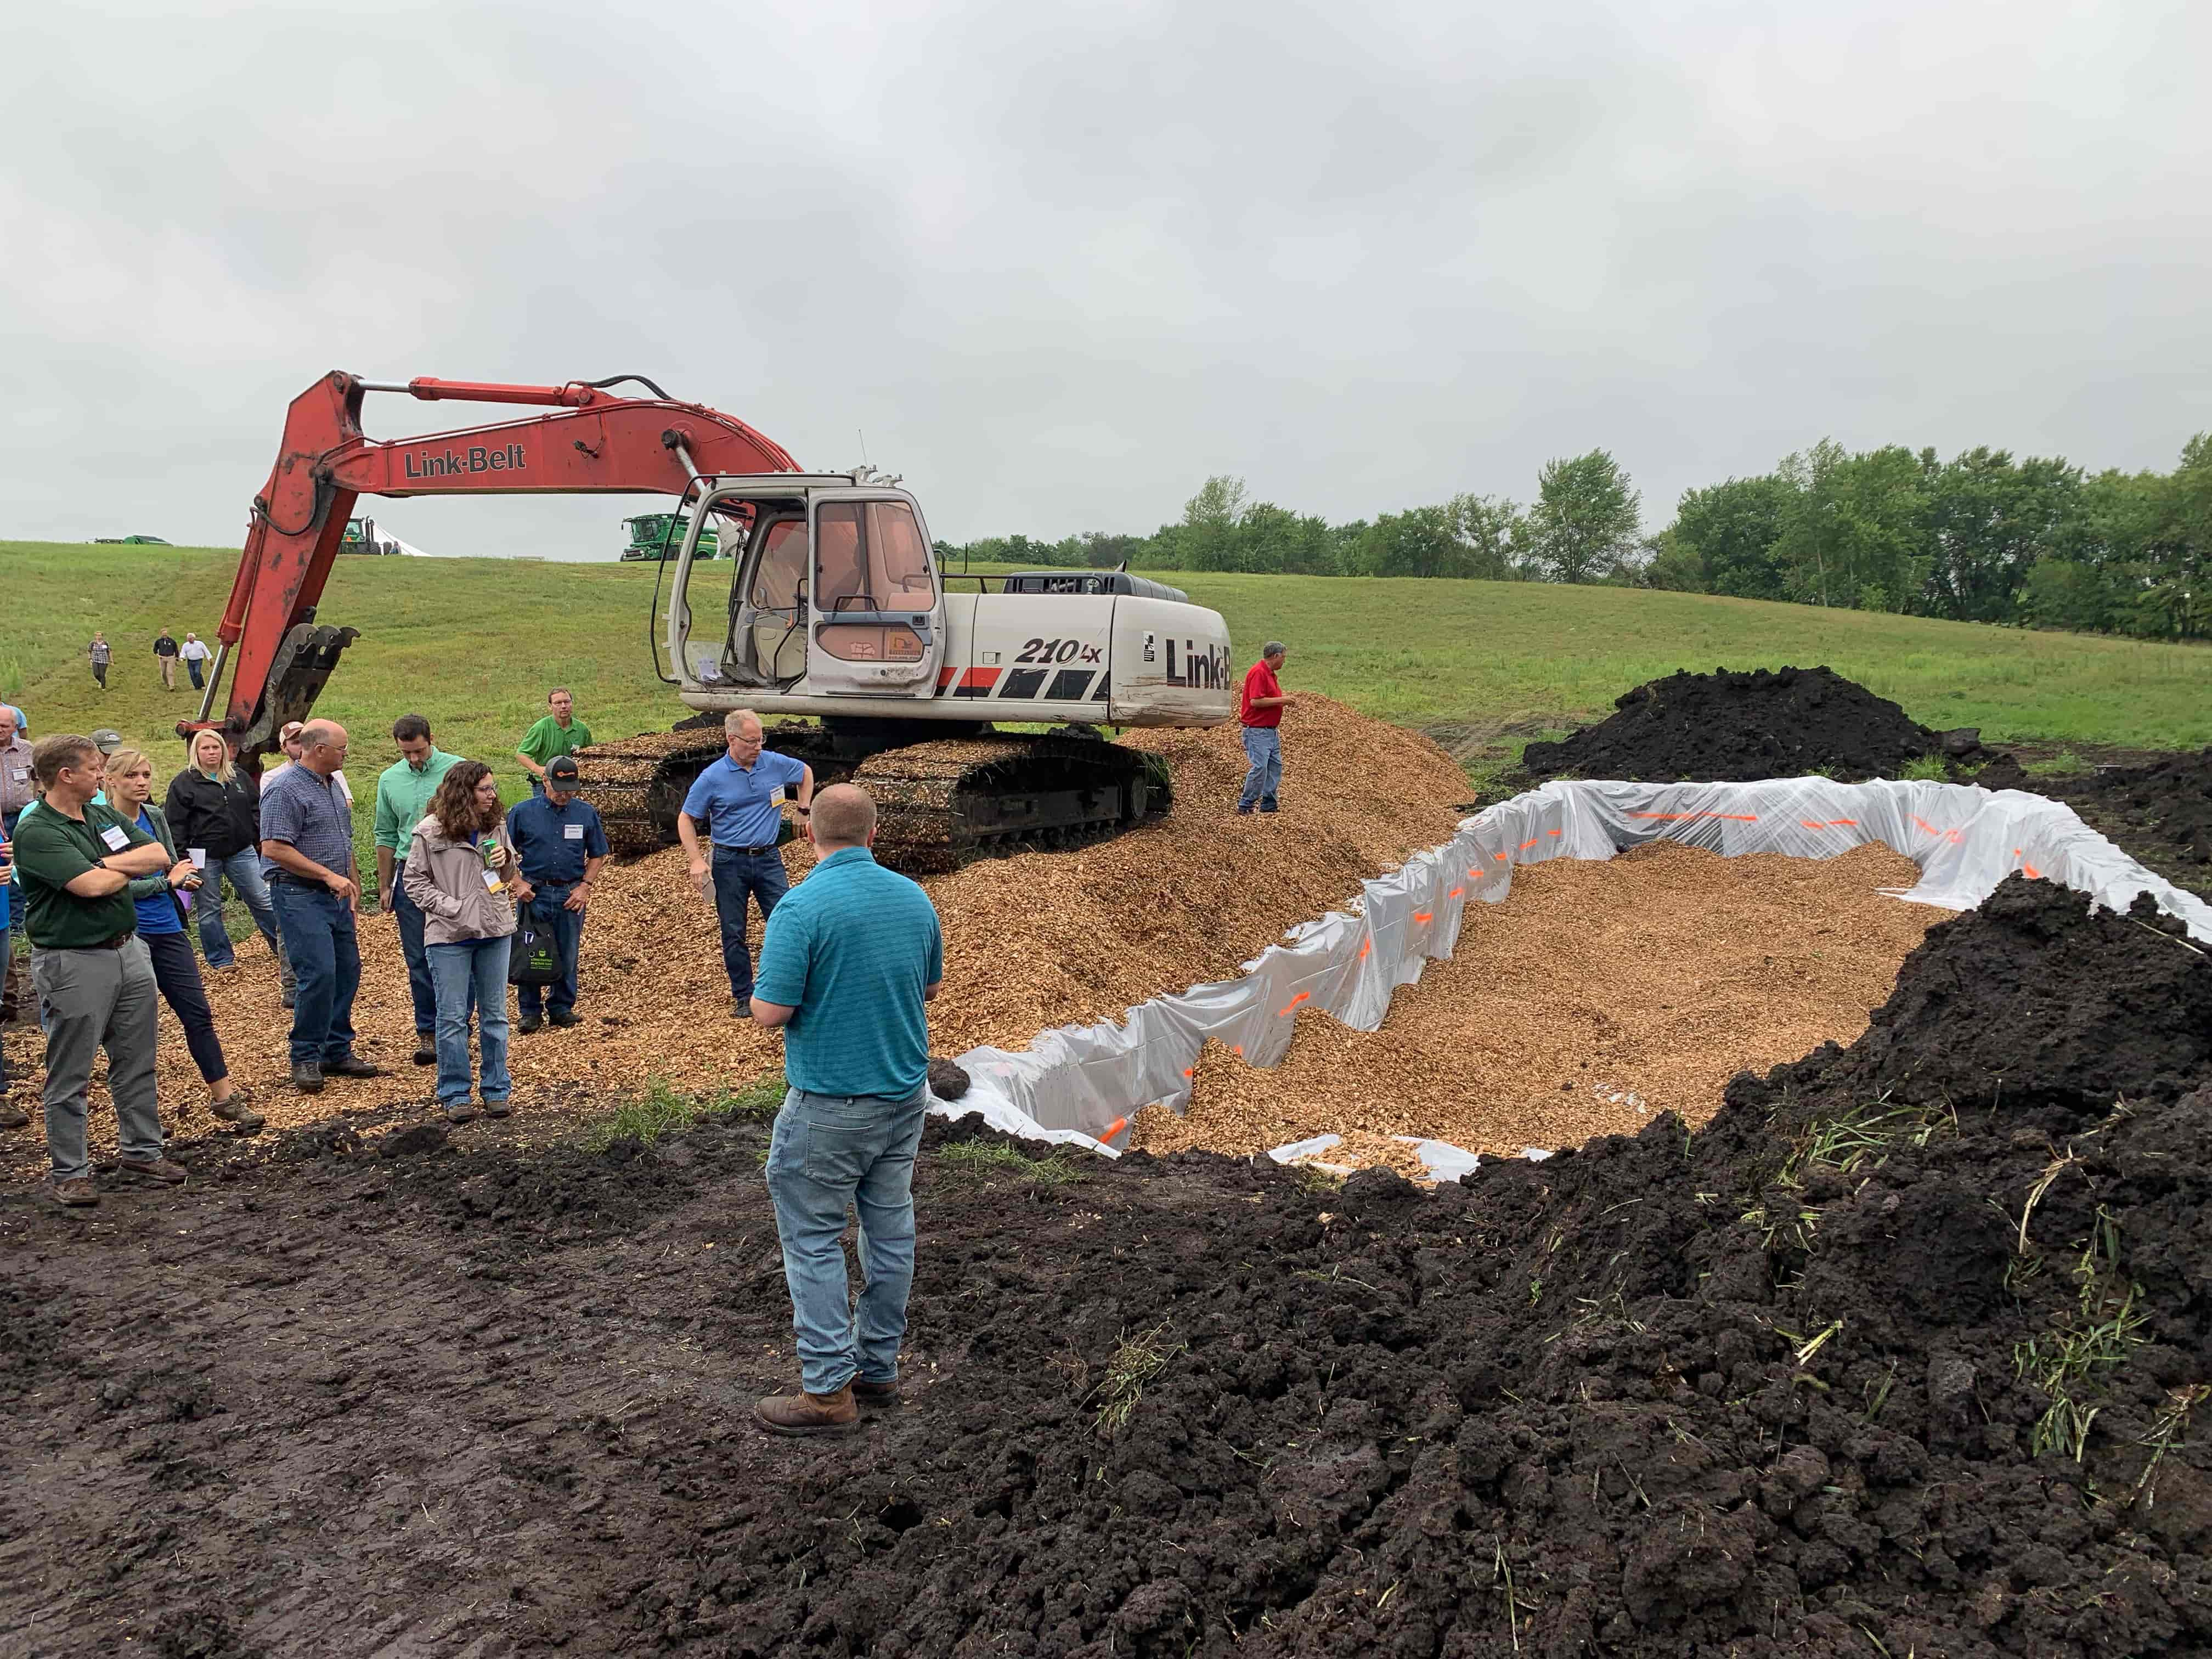 Through the help of numerous partners, Bill Couser has installed two bioreactors on the farm to improve water quality.